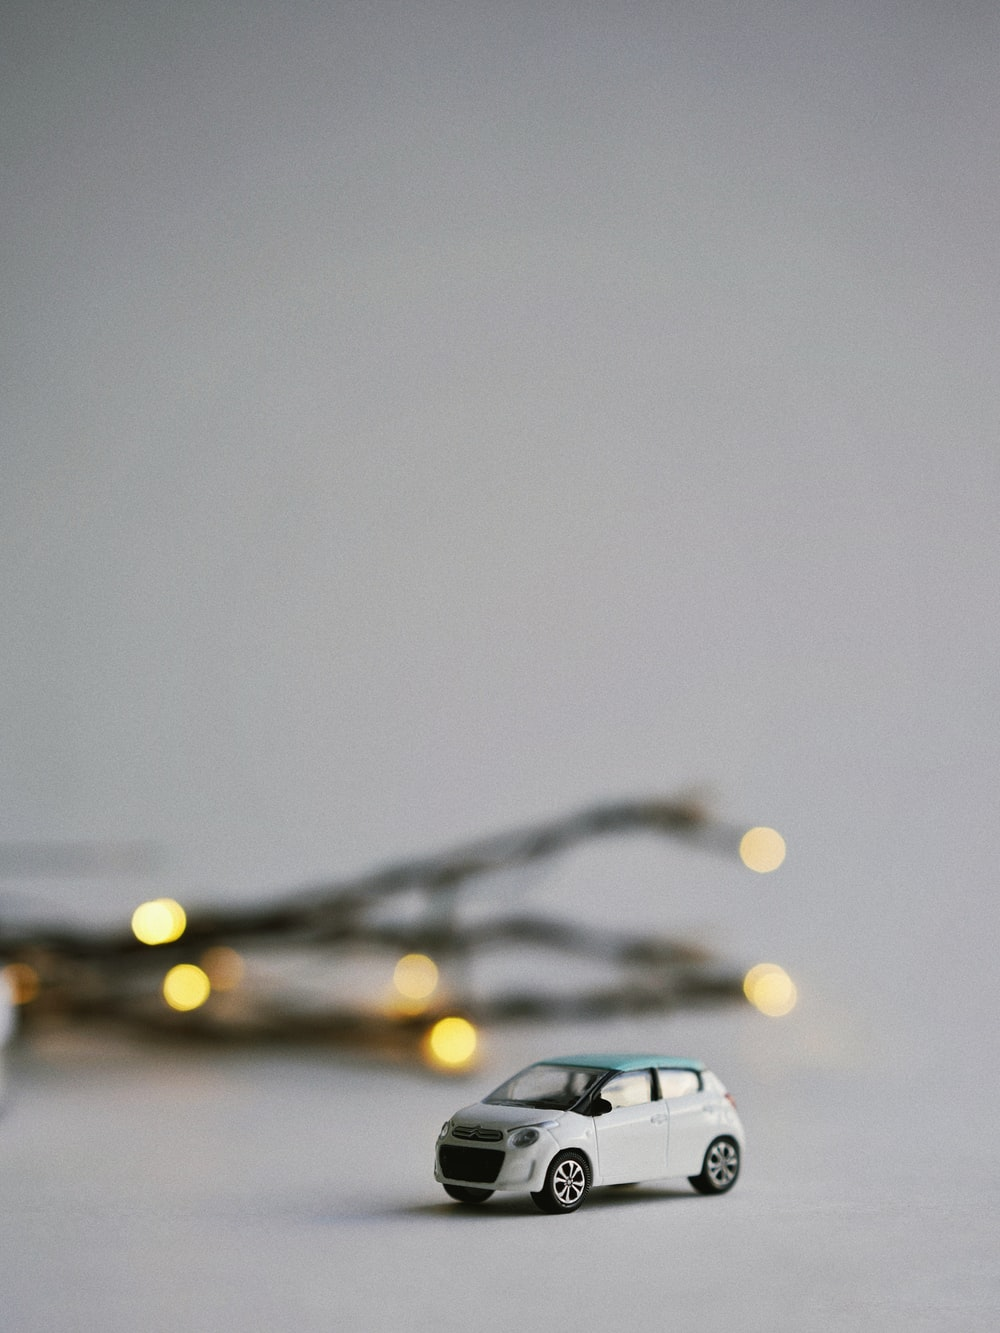 white car miniature in selective focus photography